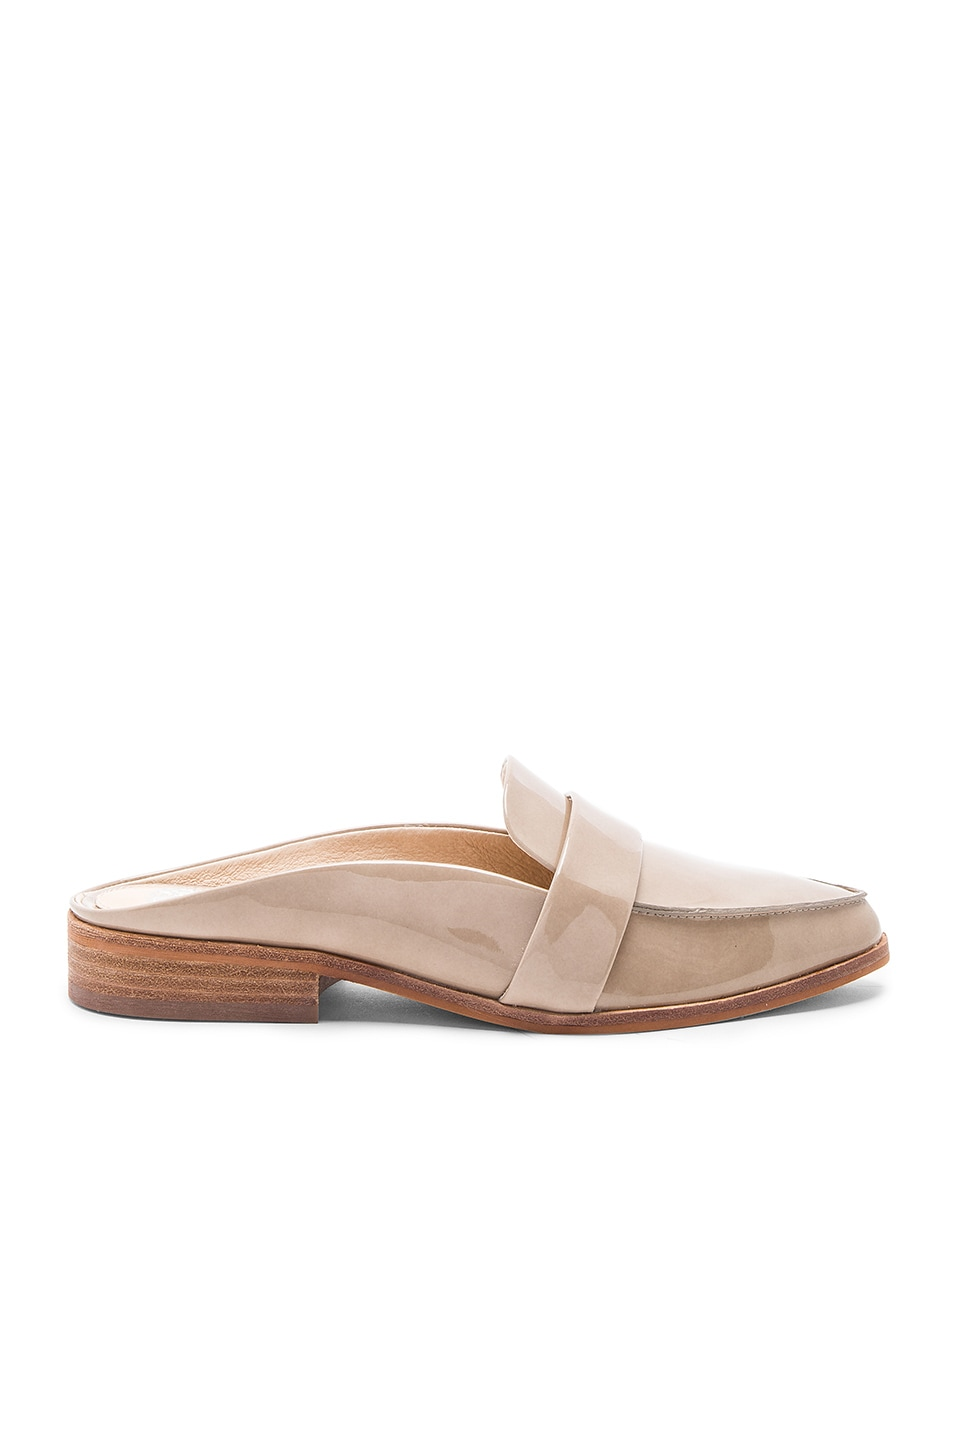 Vince Camuto Kirstie Slides in Timeless Taupe